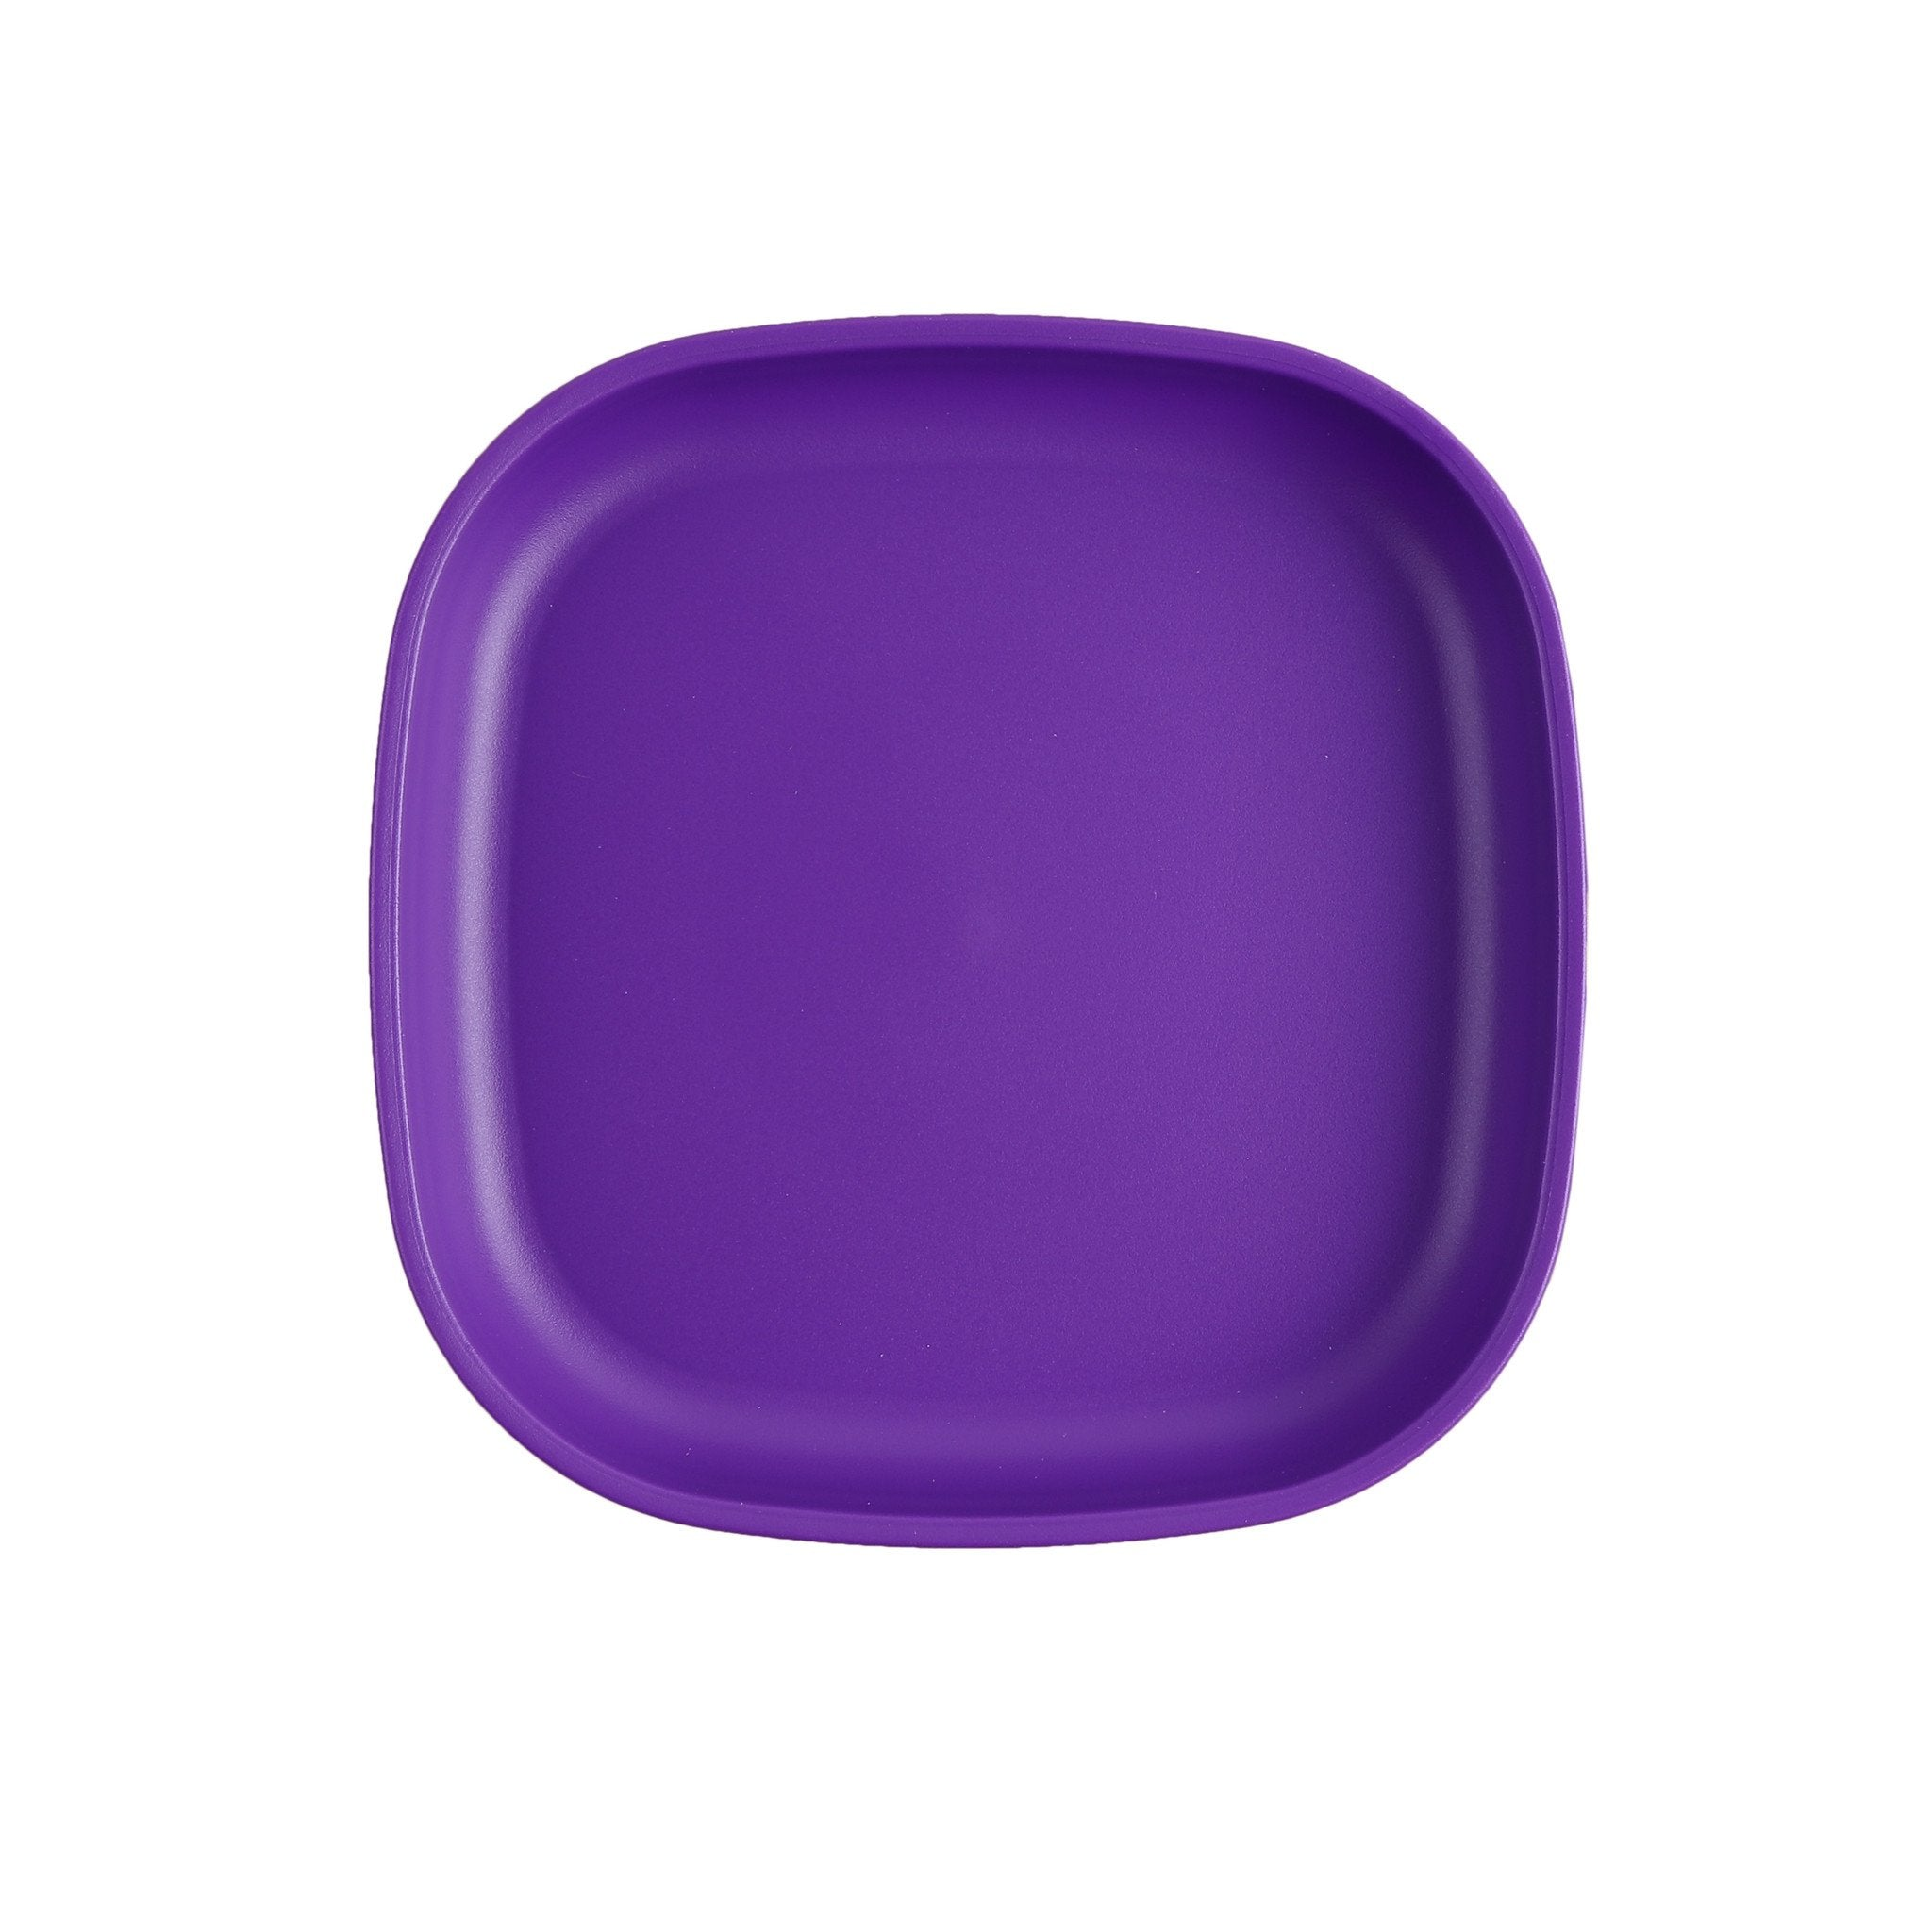 Replay Large Plate Replay Dinnerware Amethyst at Little Earth Nest Eco Shop